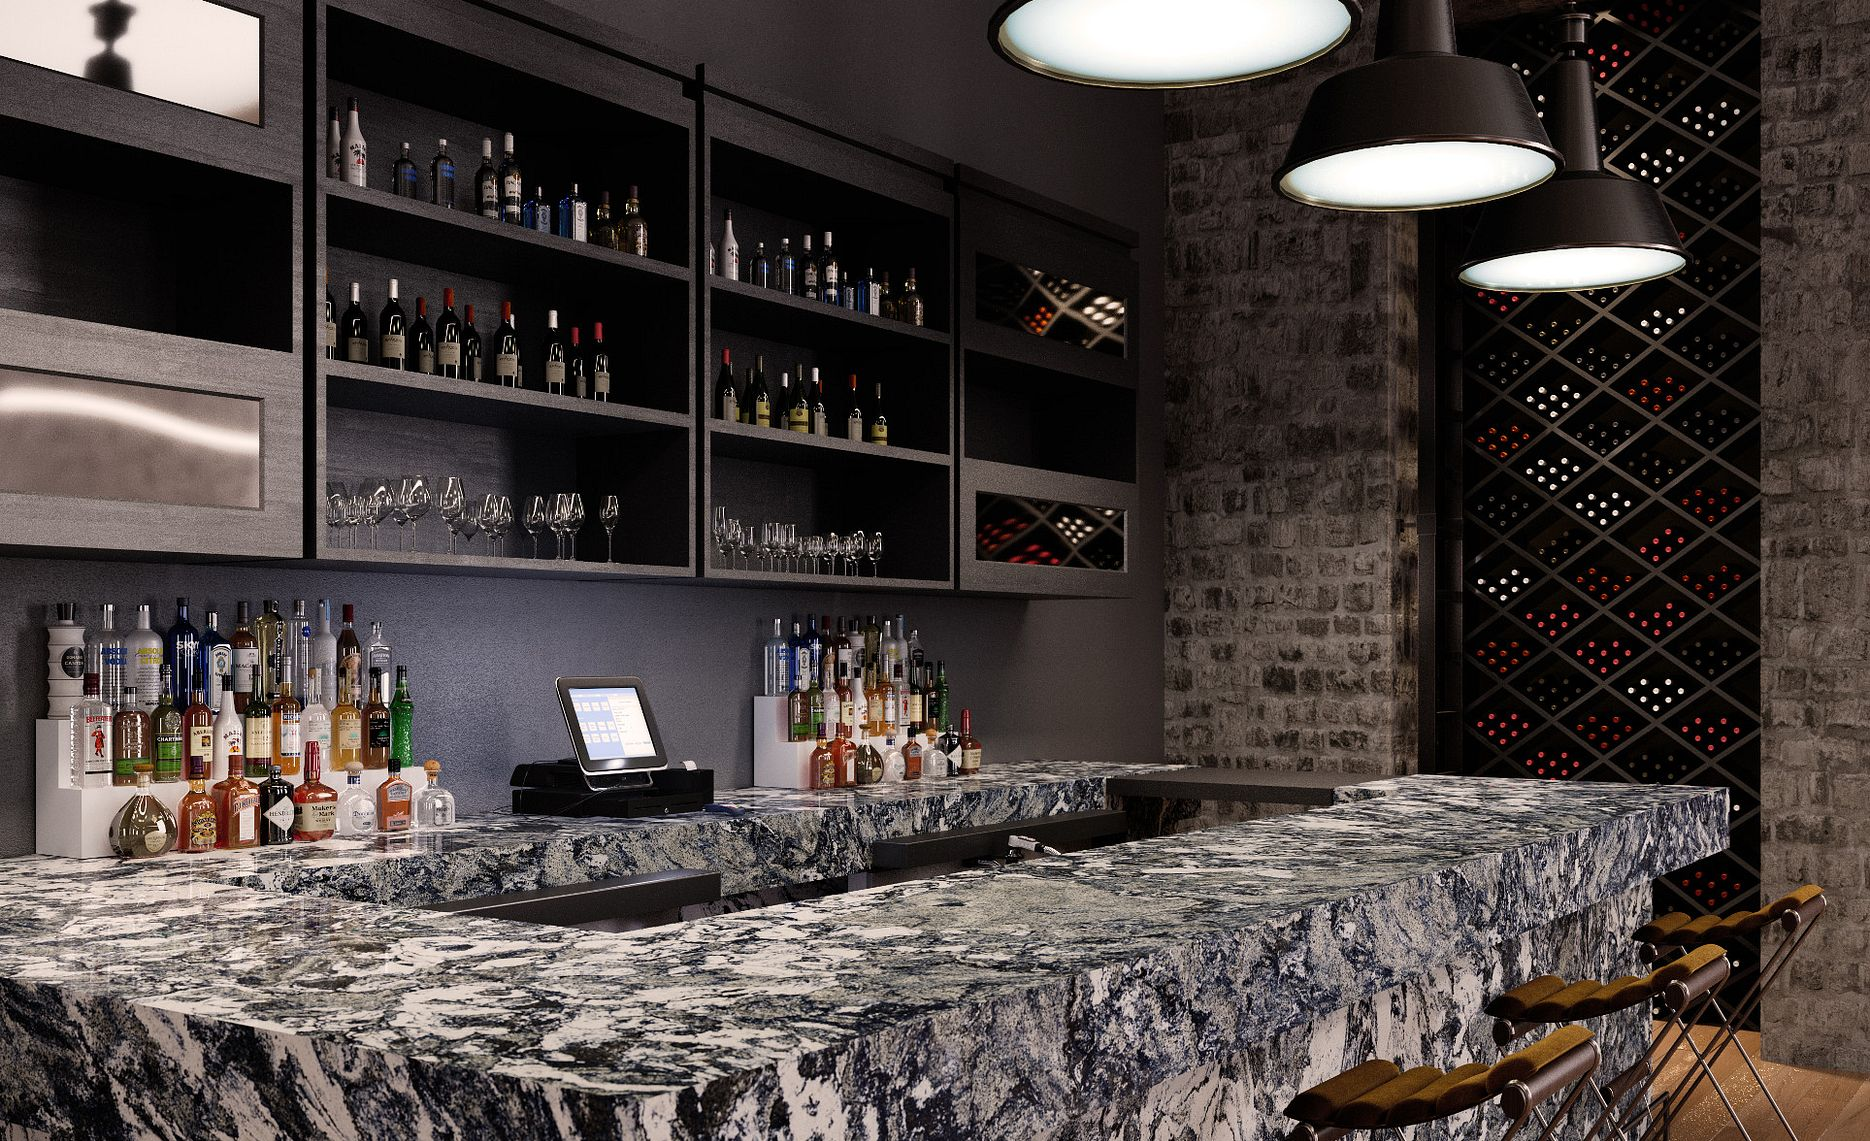 Dramatic navys are highlighted in Islinton in this chic bar.